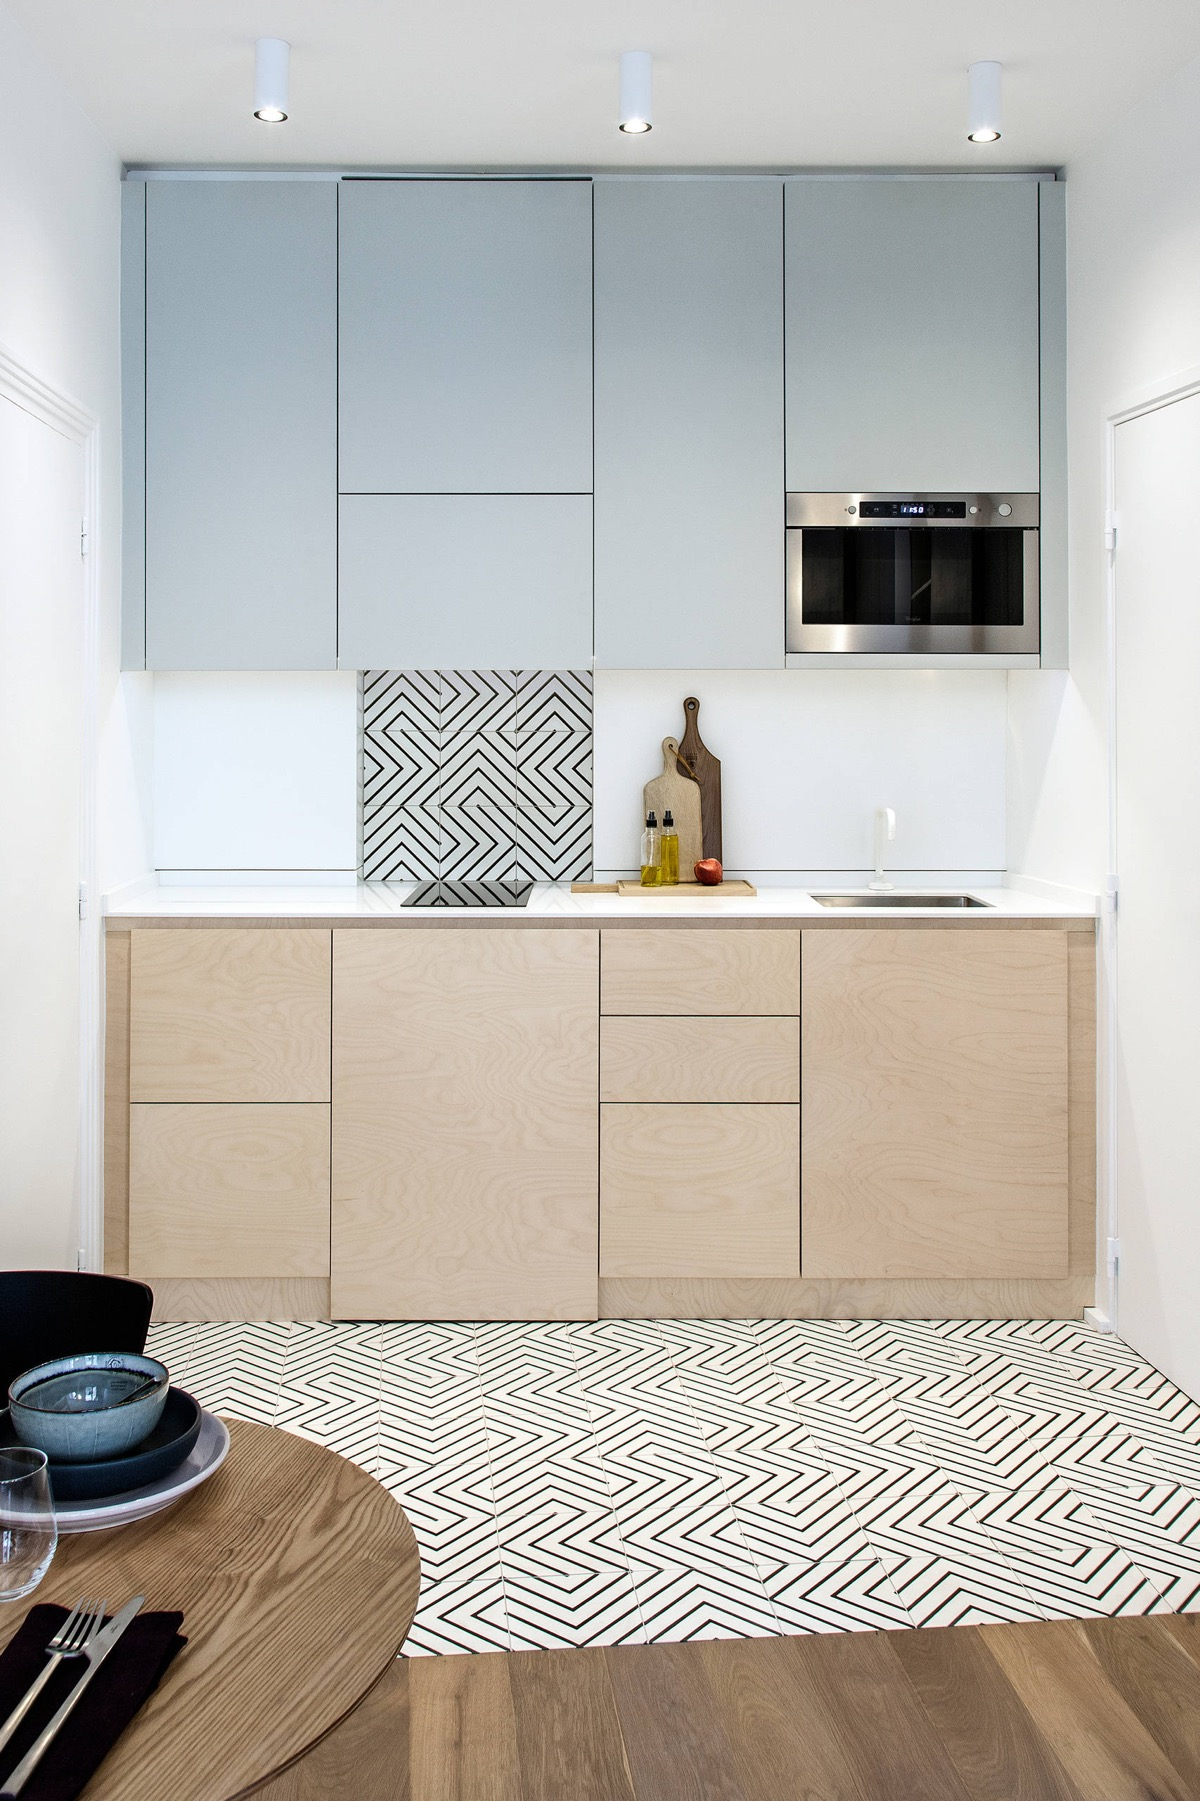 Kitchen Design And Tiles 50 Splendid Small Kitchens And Ideas You Can Use From Them